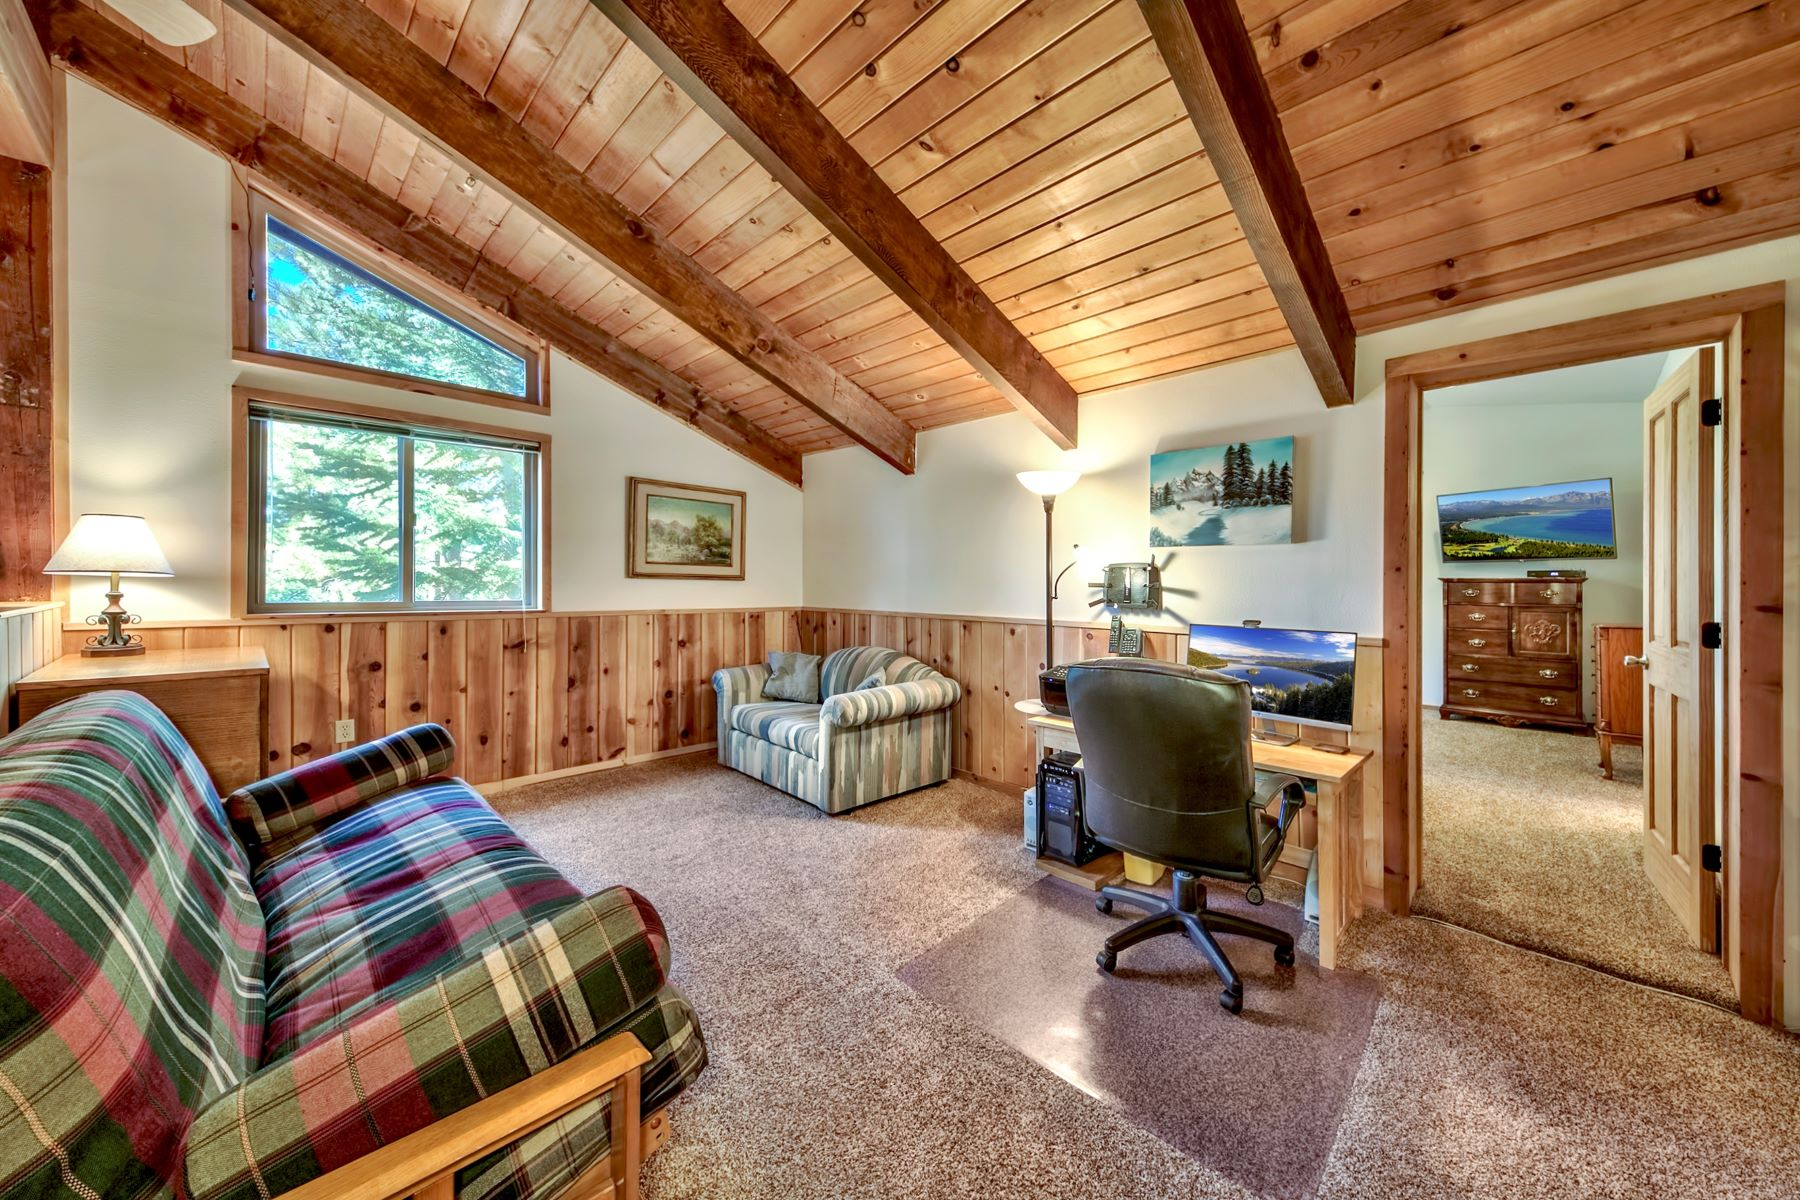 Additional photo for property listing at 1652 Hekpa Drive, South Lake Tahoe, CA 96150 1652 Hekpa Drive 南太浩湖, 加利福尼亚州 91650 美国